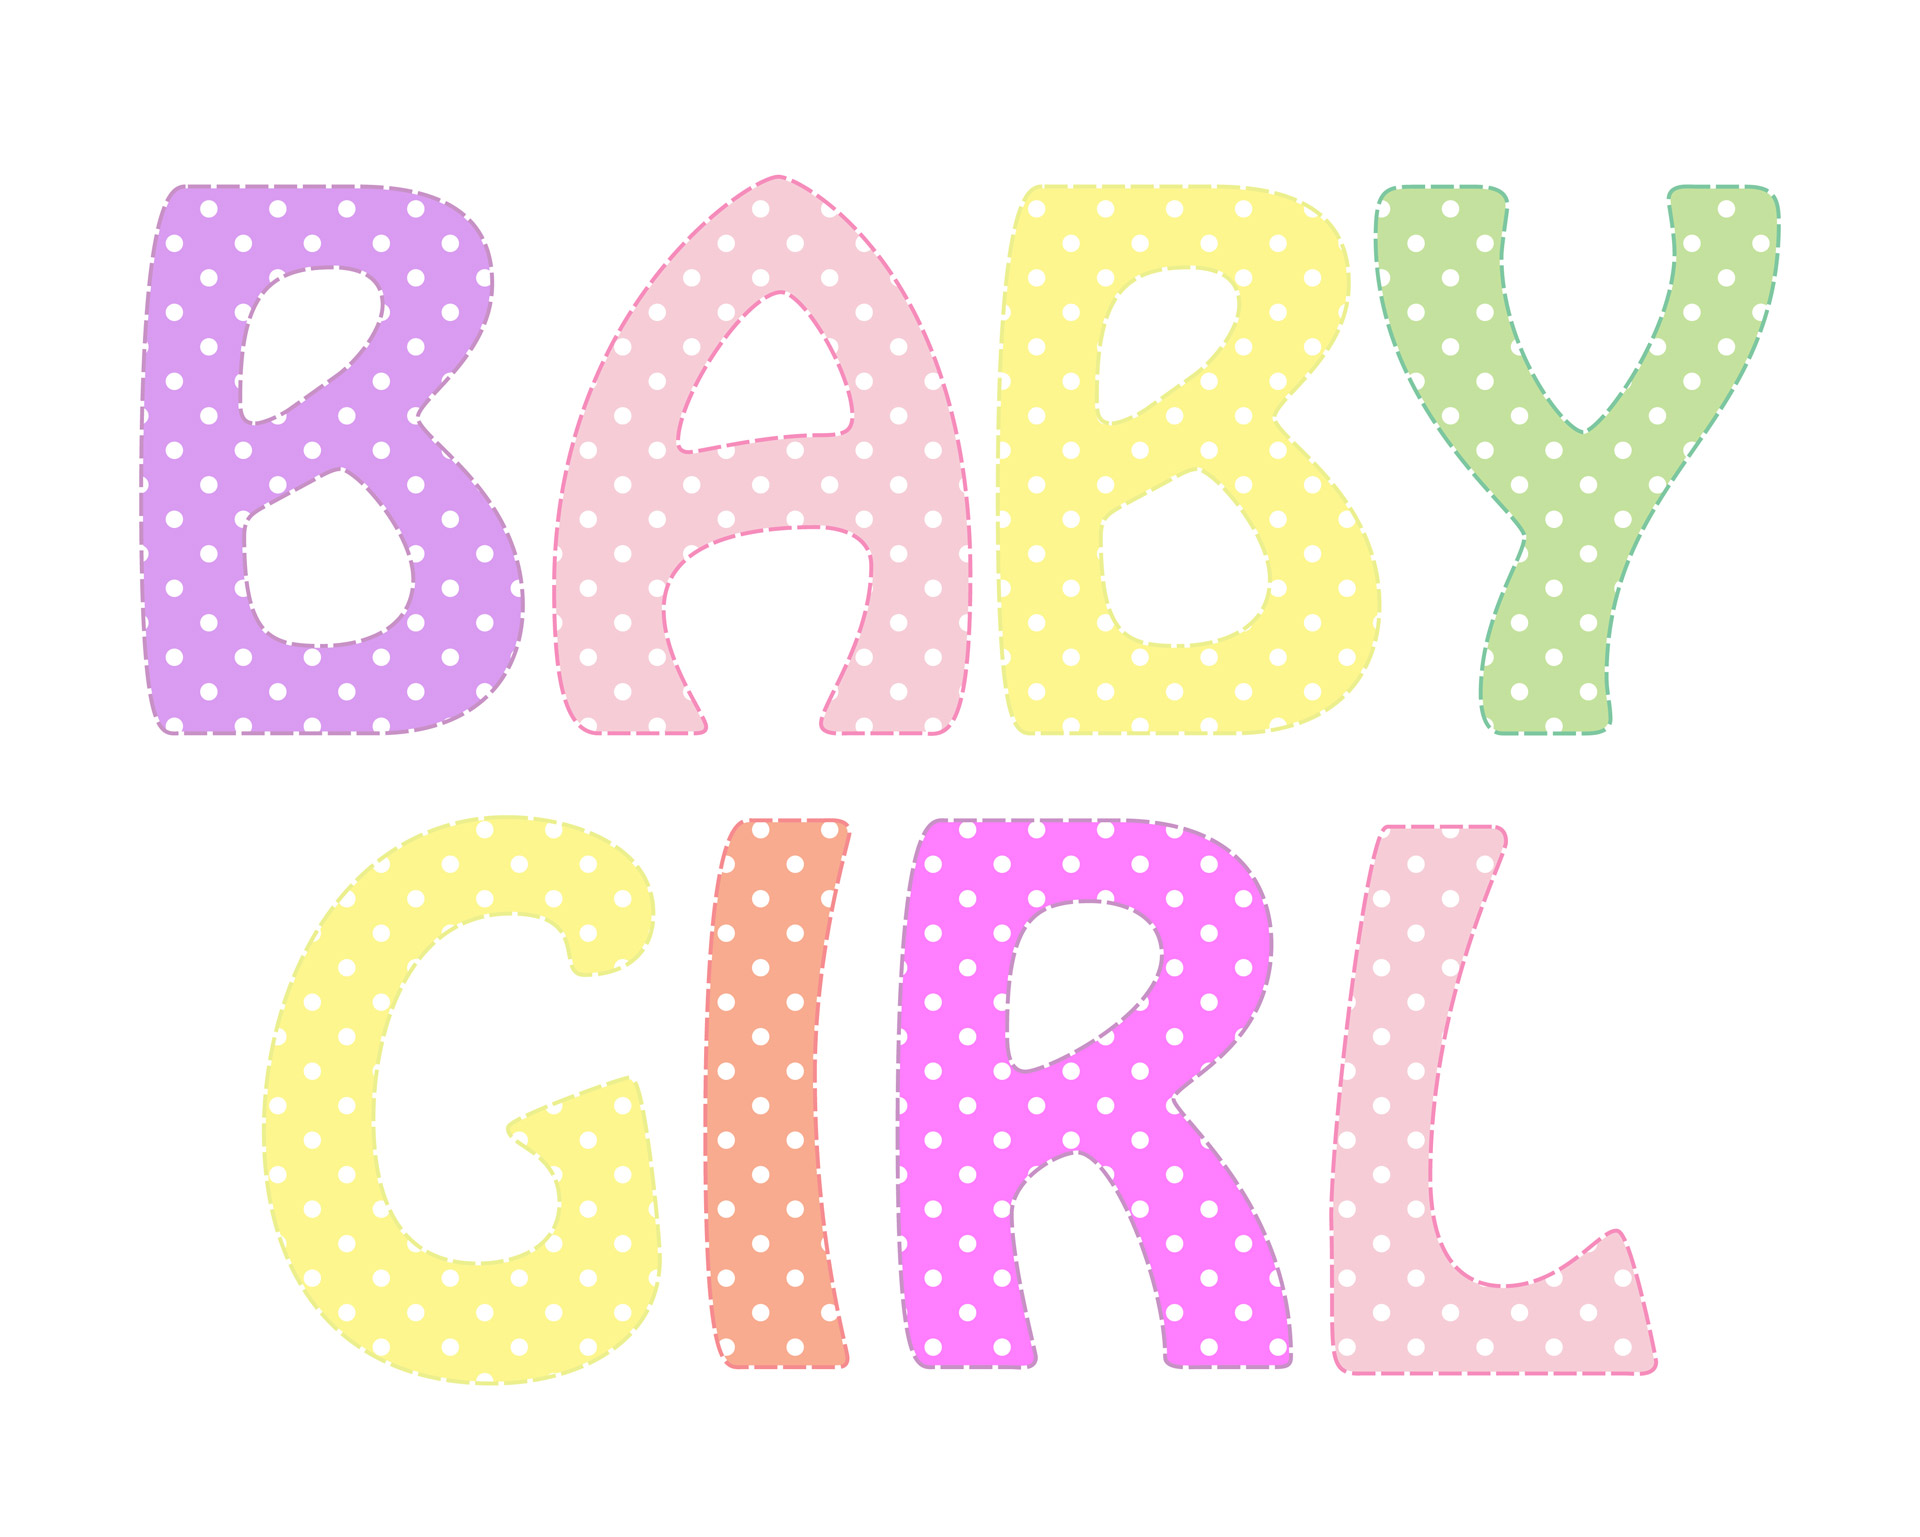 Baby clipart girl free picture stock free baby clipart girl – Clipart Free Download picture stock